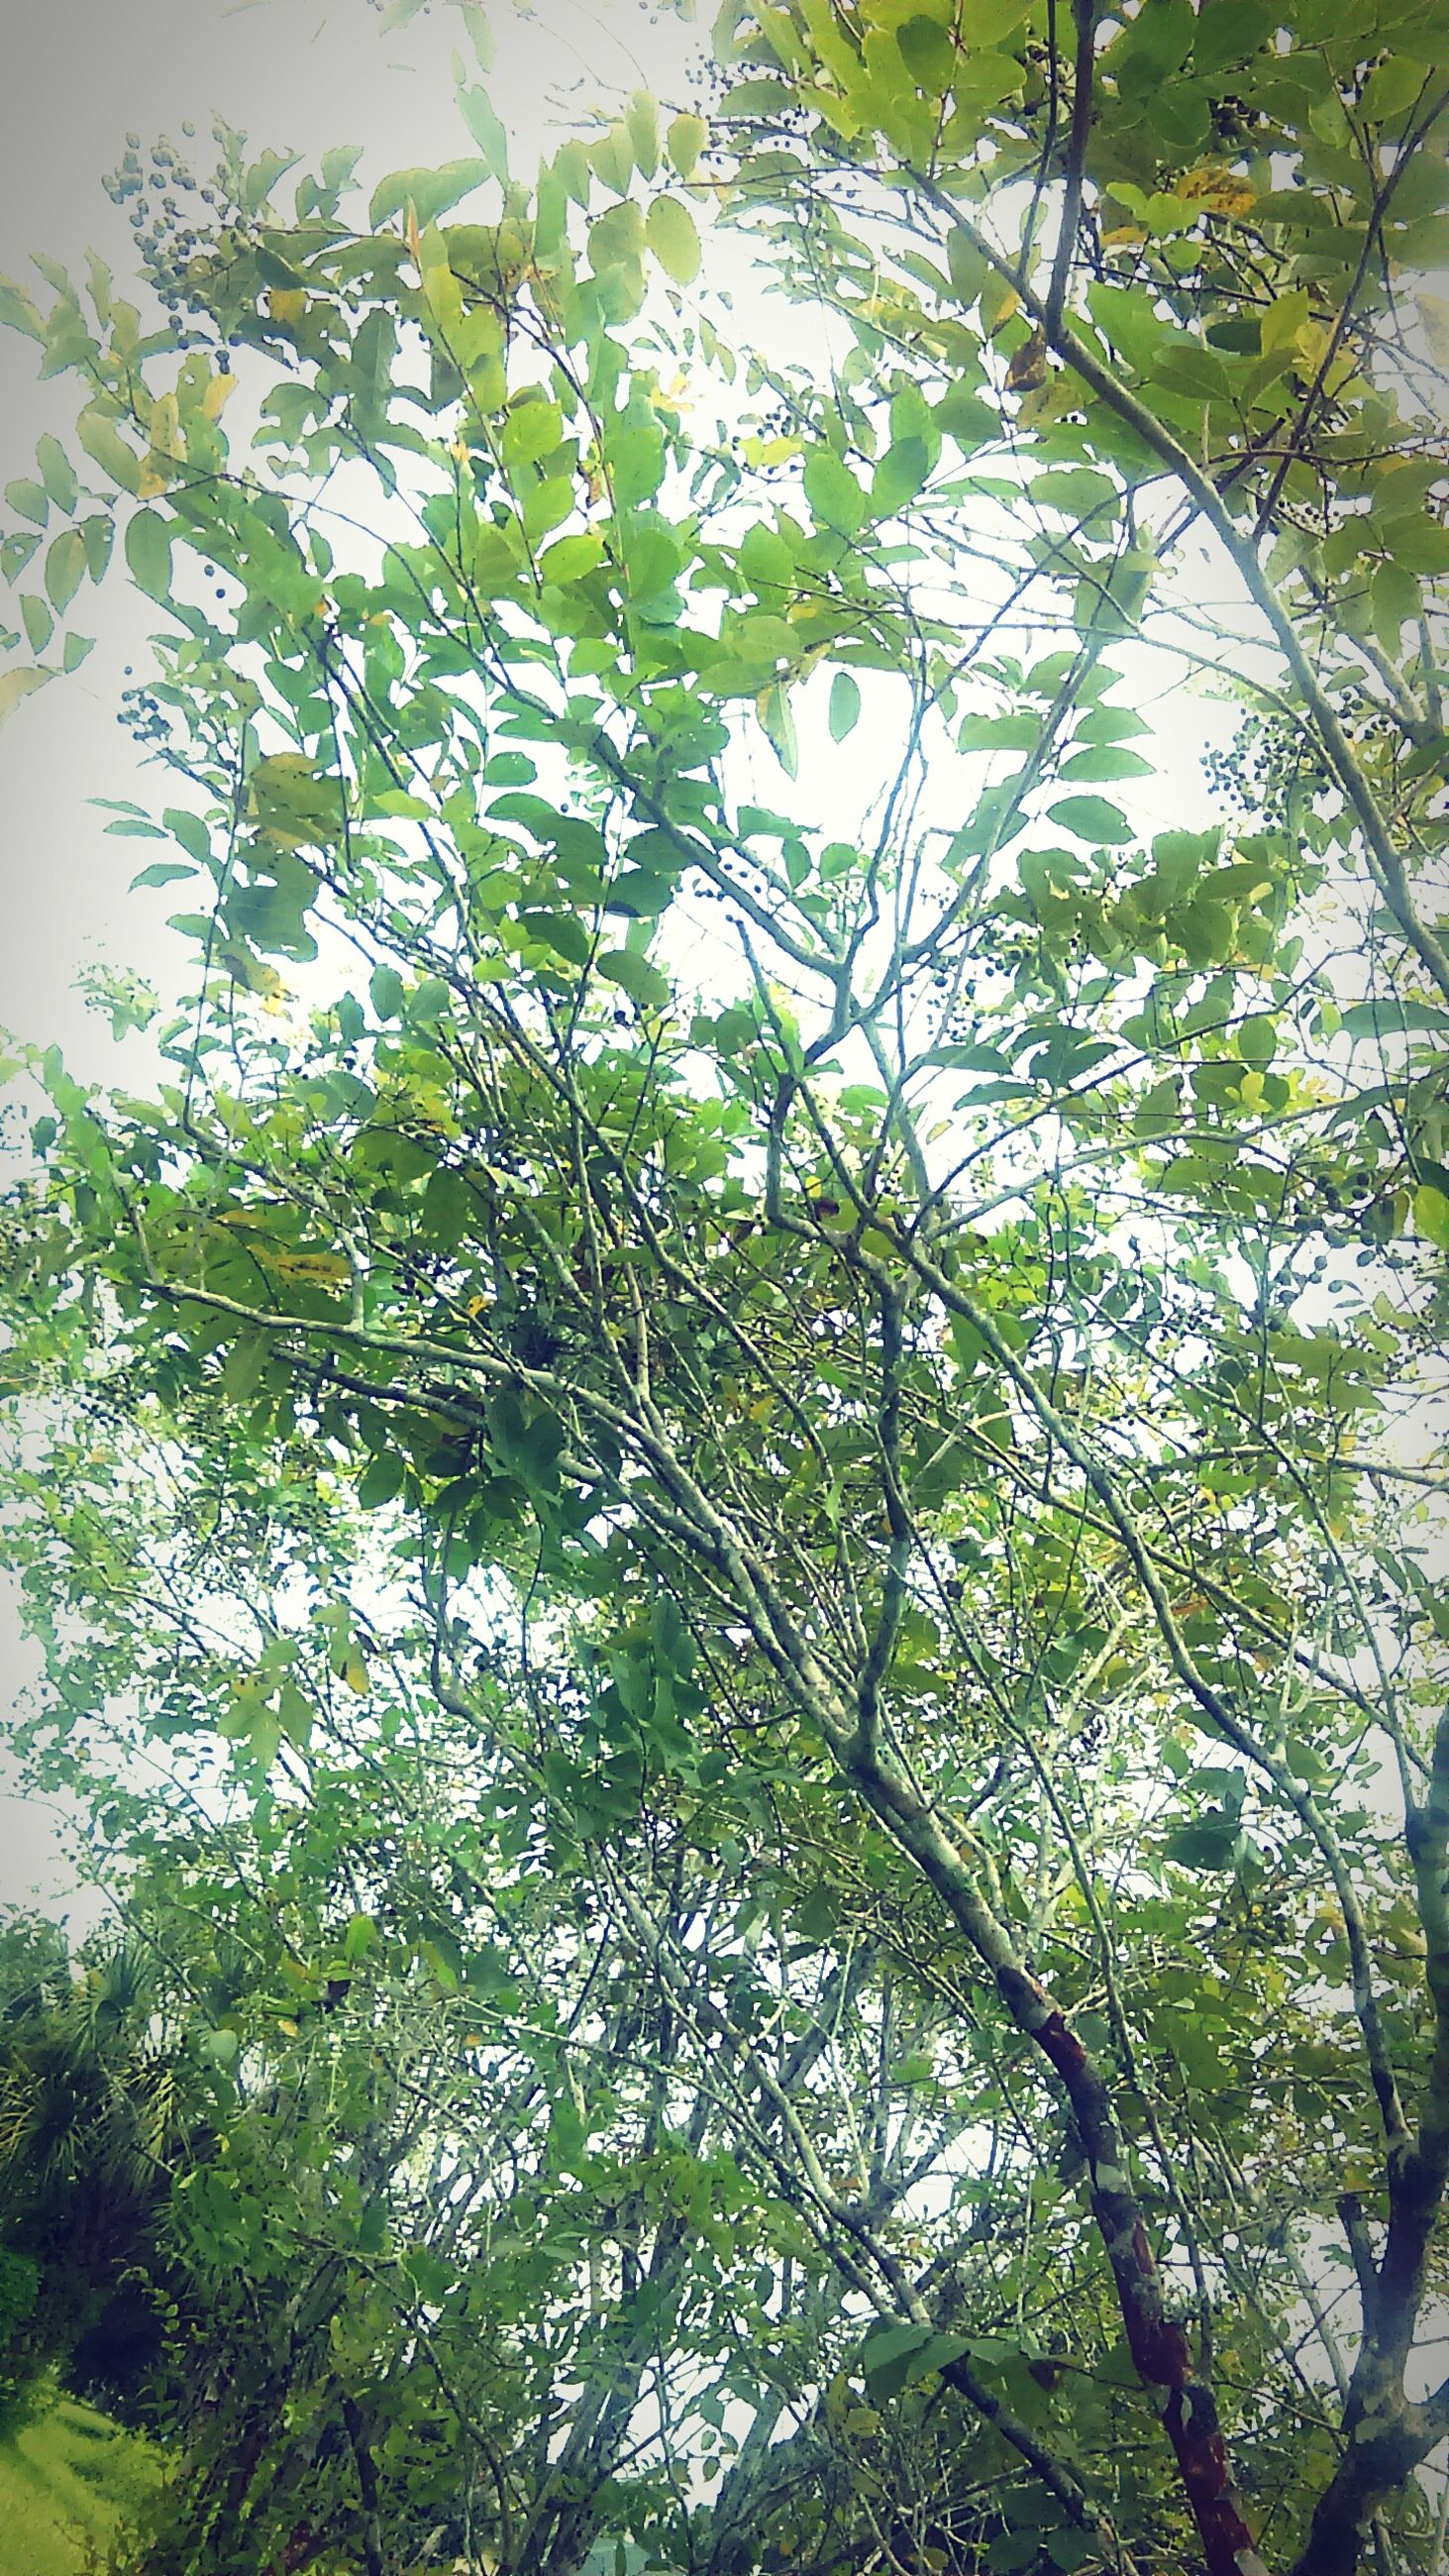 tree, low angle view, branch, growth, green color, leaf, nature, beauty in nature, tranquility, day, no people, lush foliage, outdoors, green, plant, sky, close-up, growing, sunlight, freshness